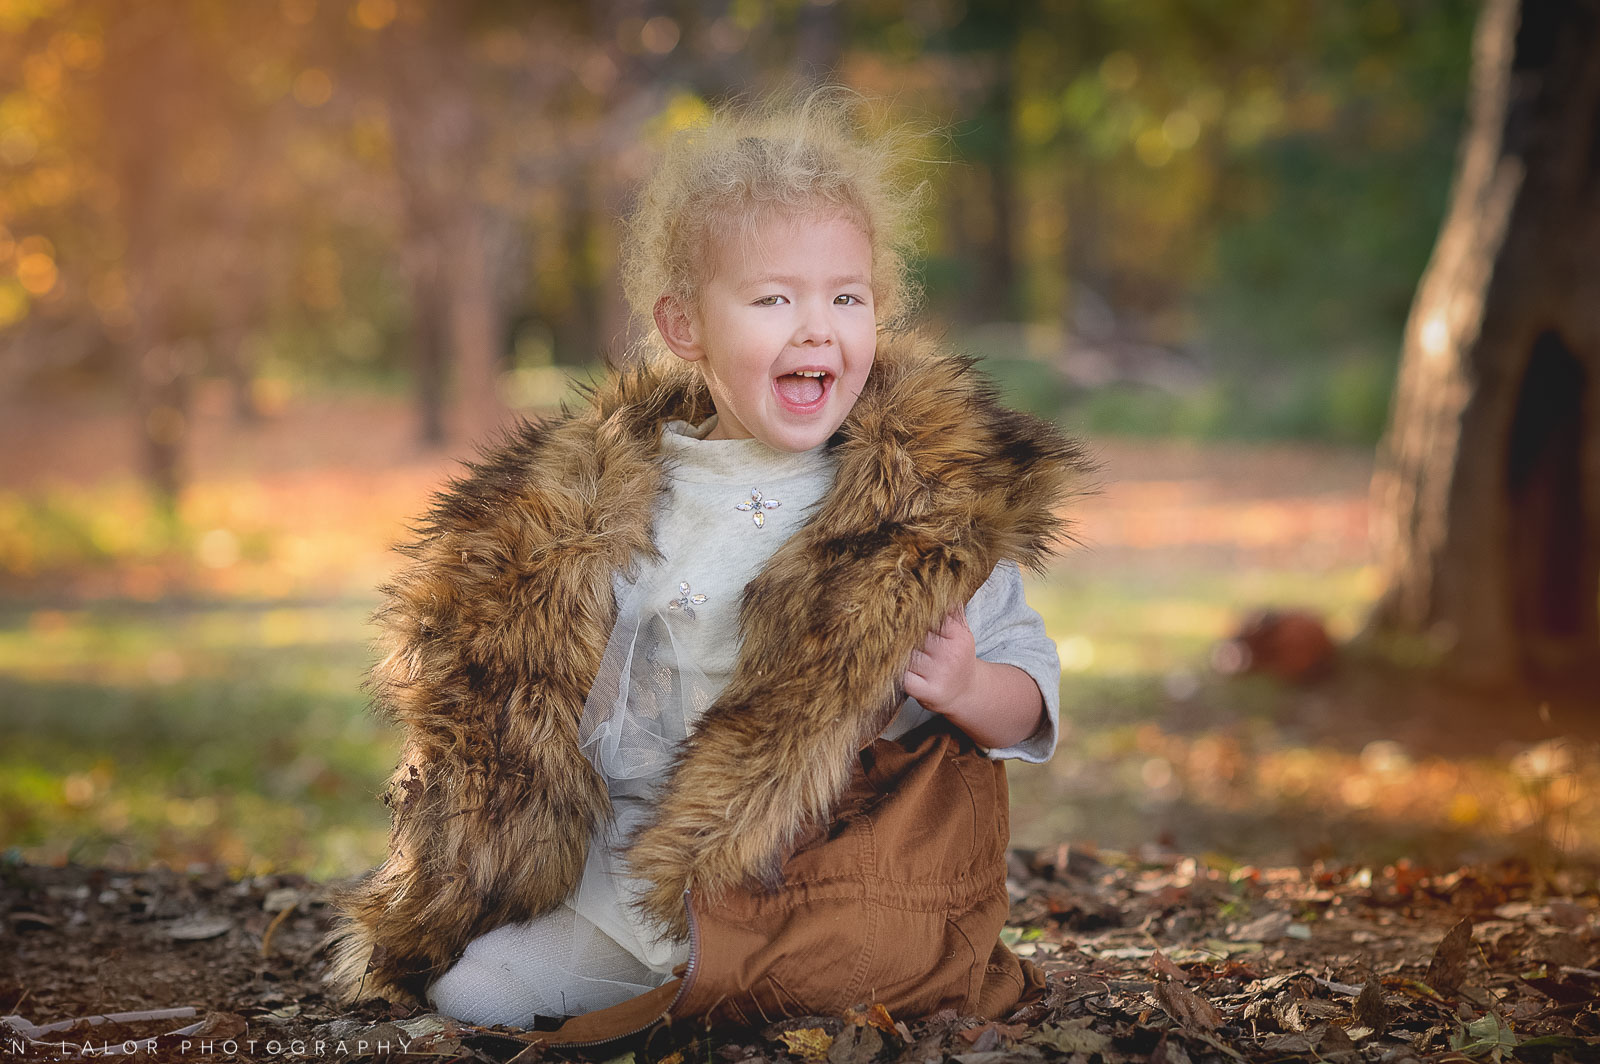 nlalor-photography-2014-styled-family-life-new-canaan-nature-center-fall-7.jpg